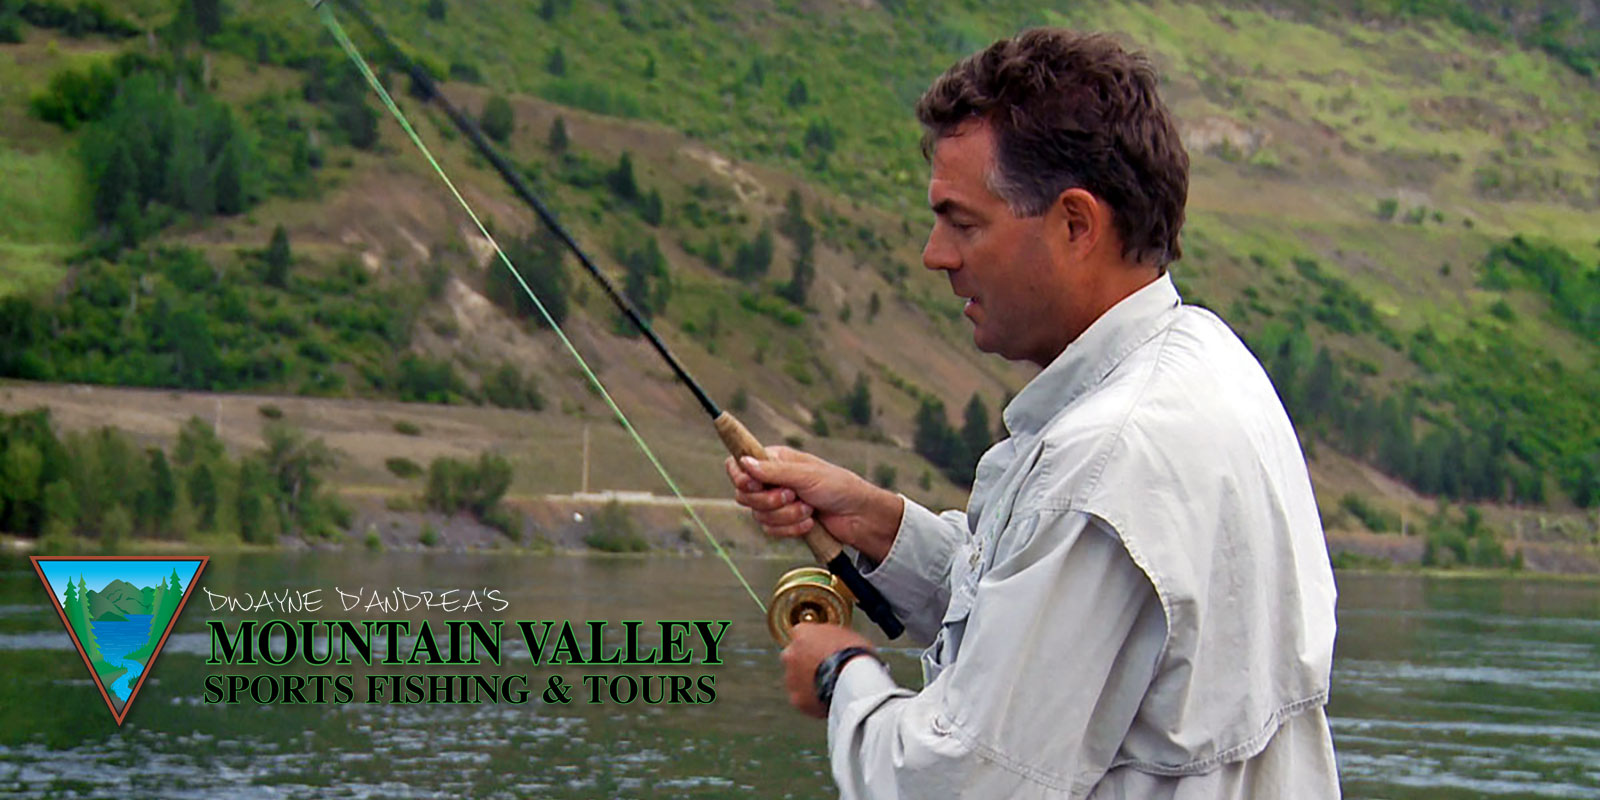 Main Mountain Valley Sport Fishing and Tours